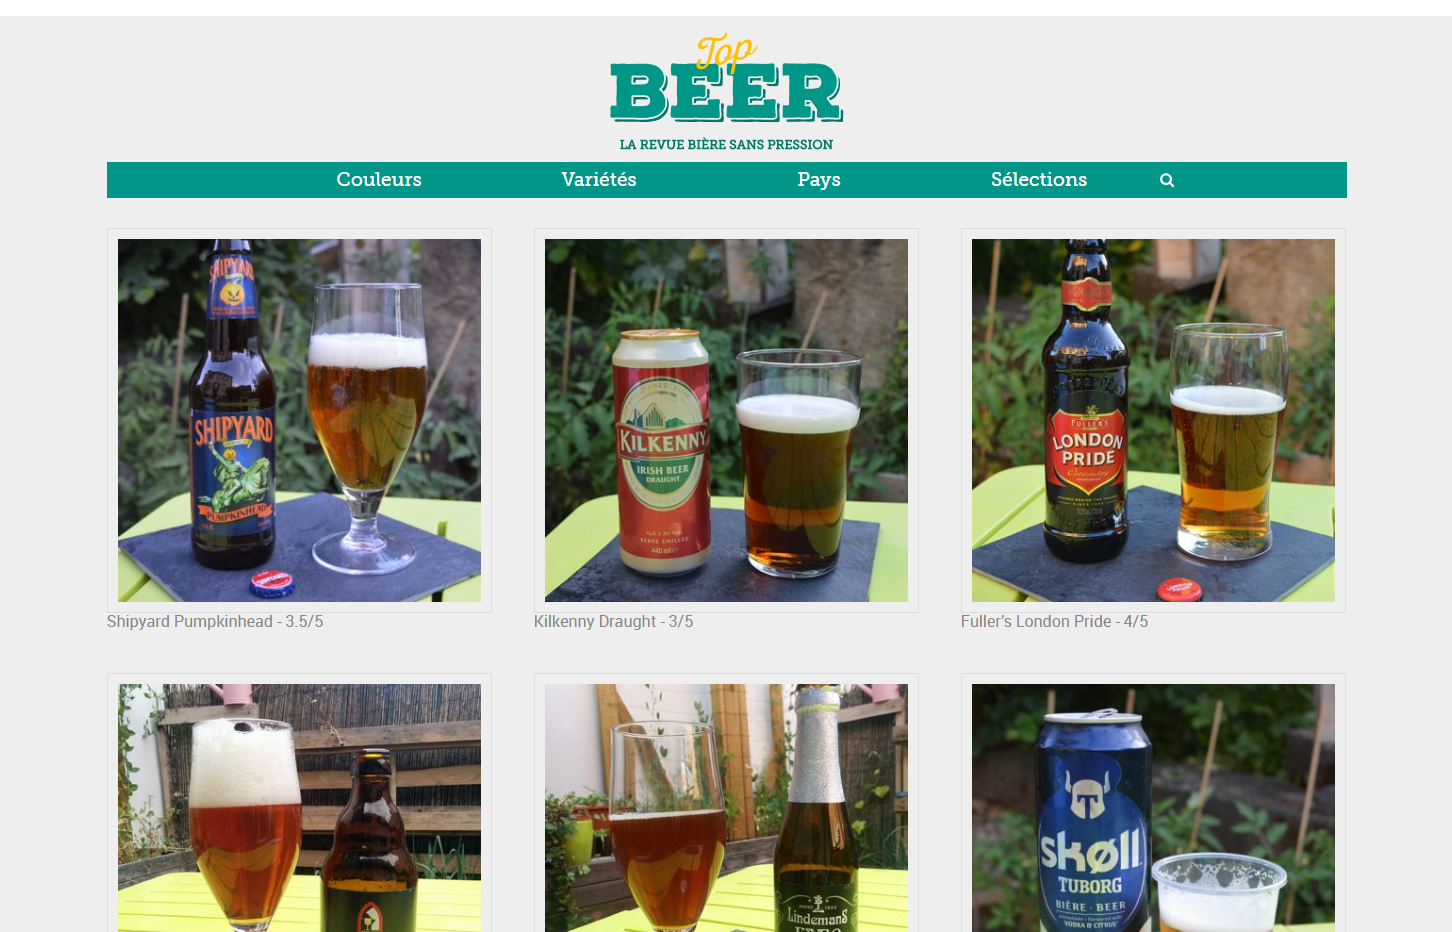 Top Beer : la revue bi\u00e8re sans pression